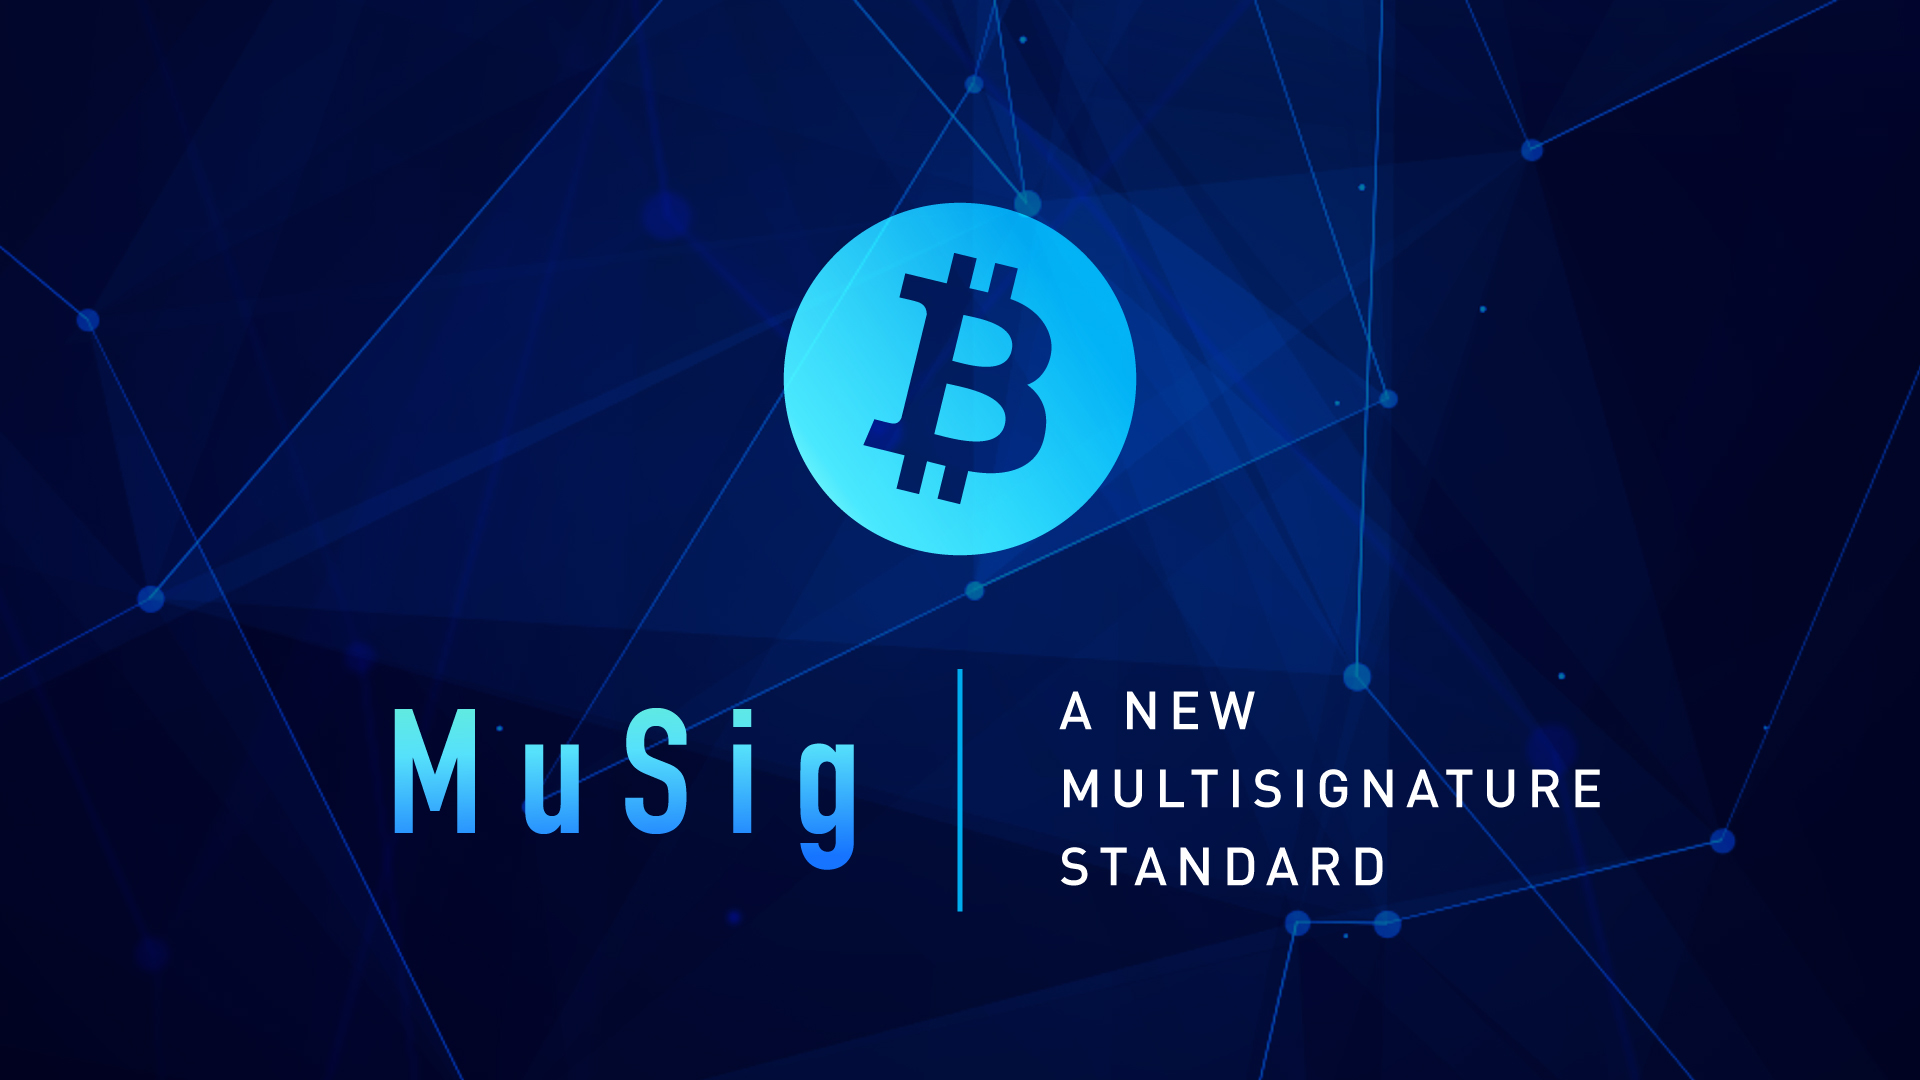 Blockstream - MuSig: A New Multisignature Standard